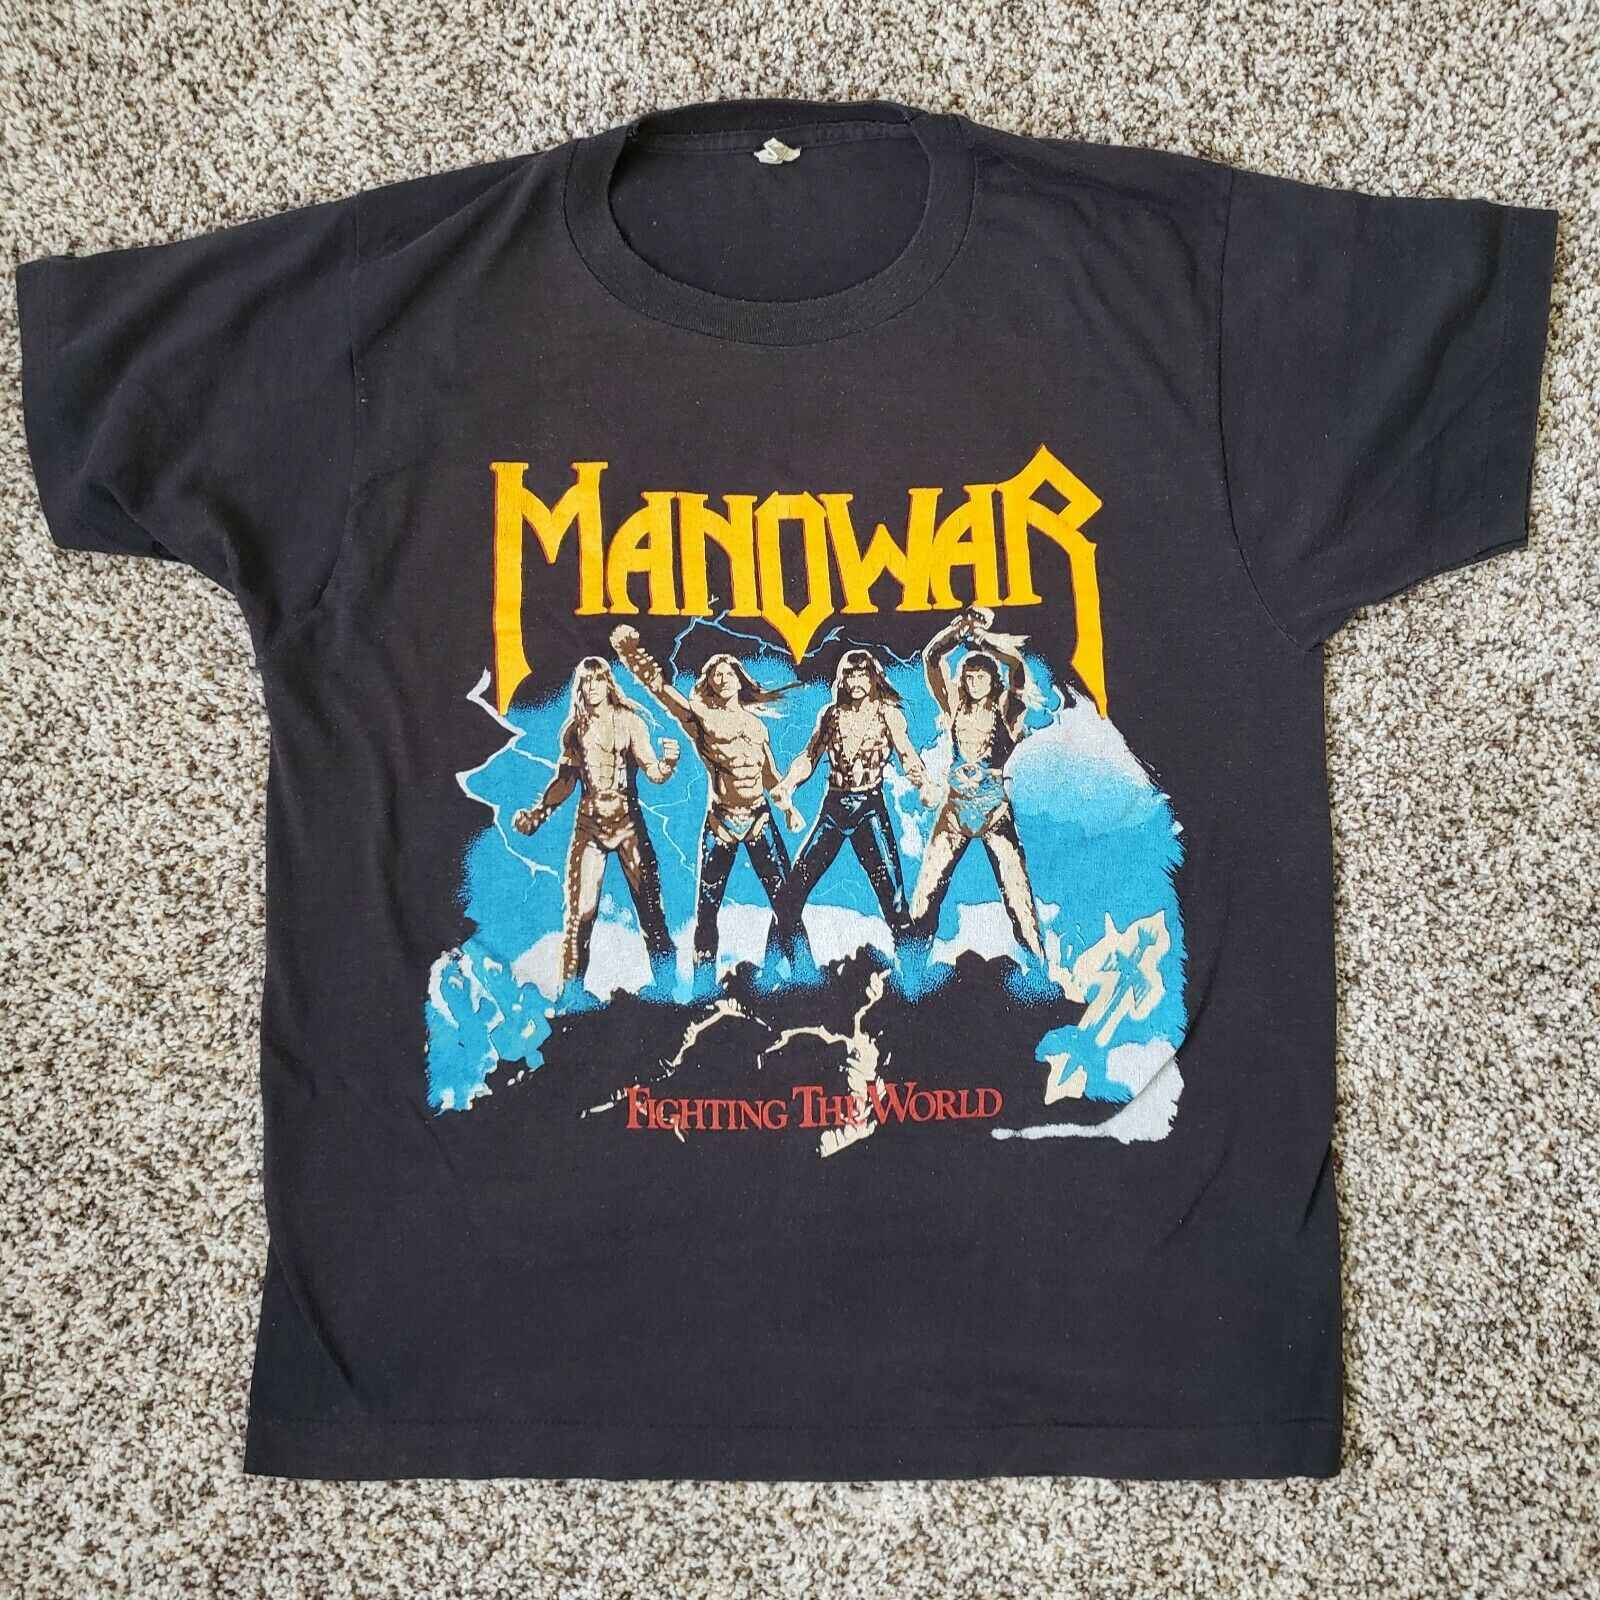 Vintage Manowar Fighting The World Tour 1987 88 Concert T shirt Med w/ tic stub 100% Cotton For Man Shirts